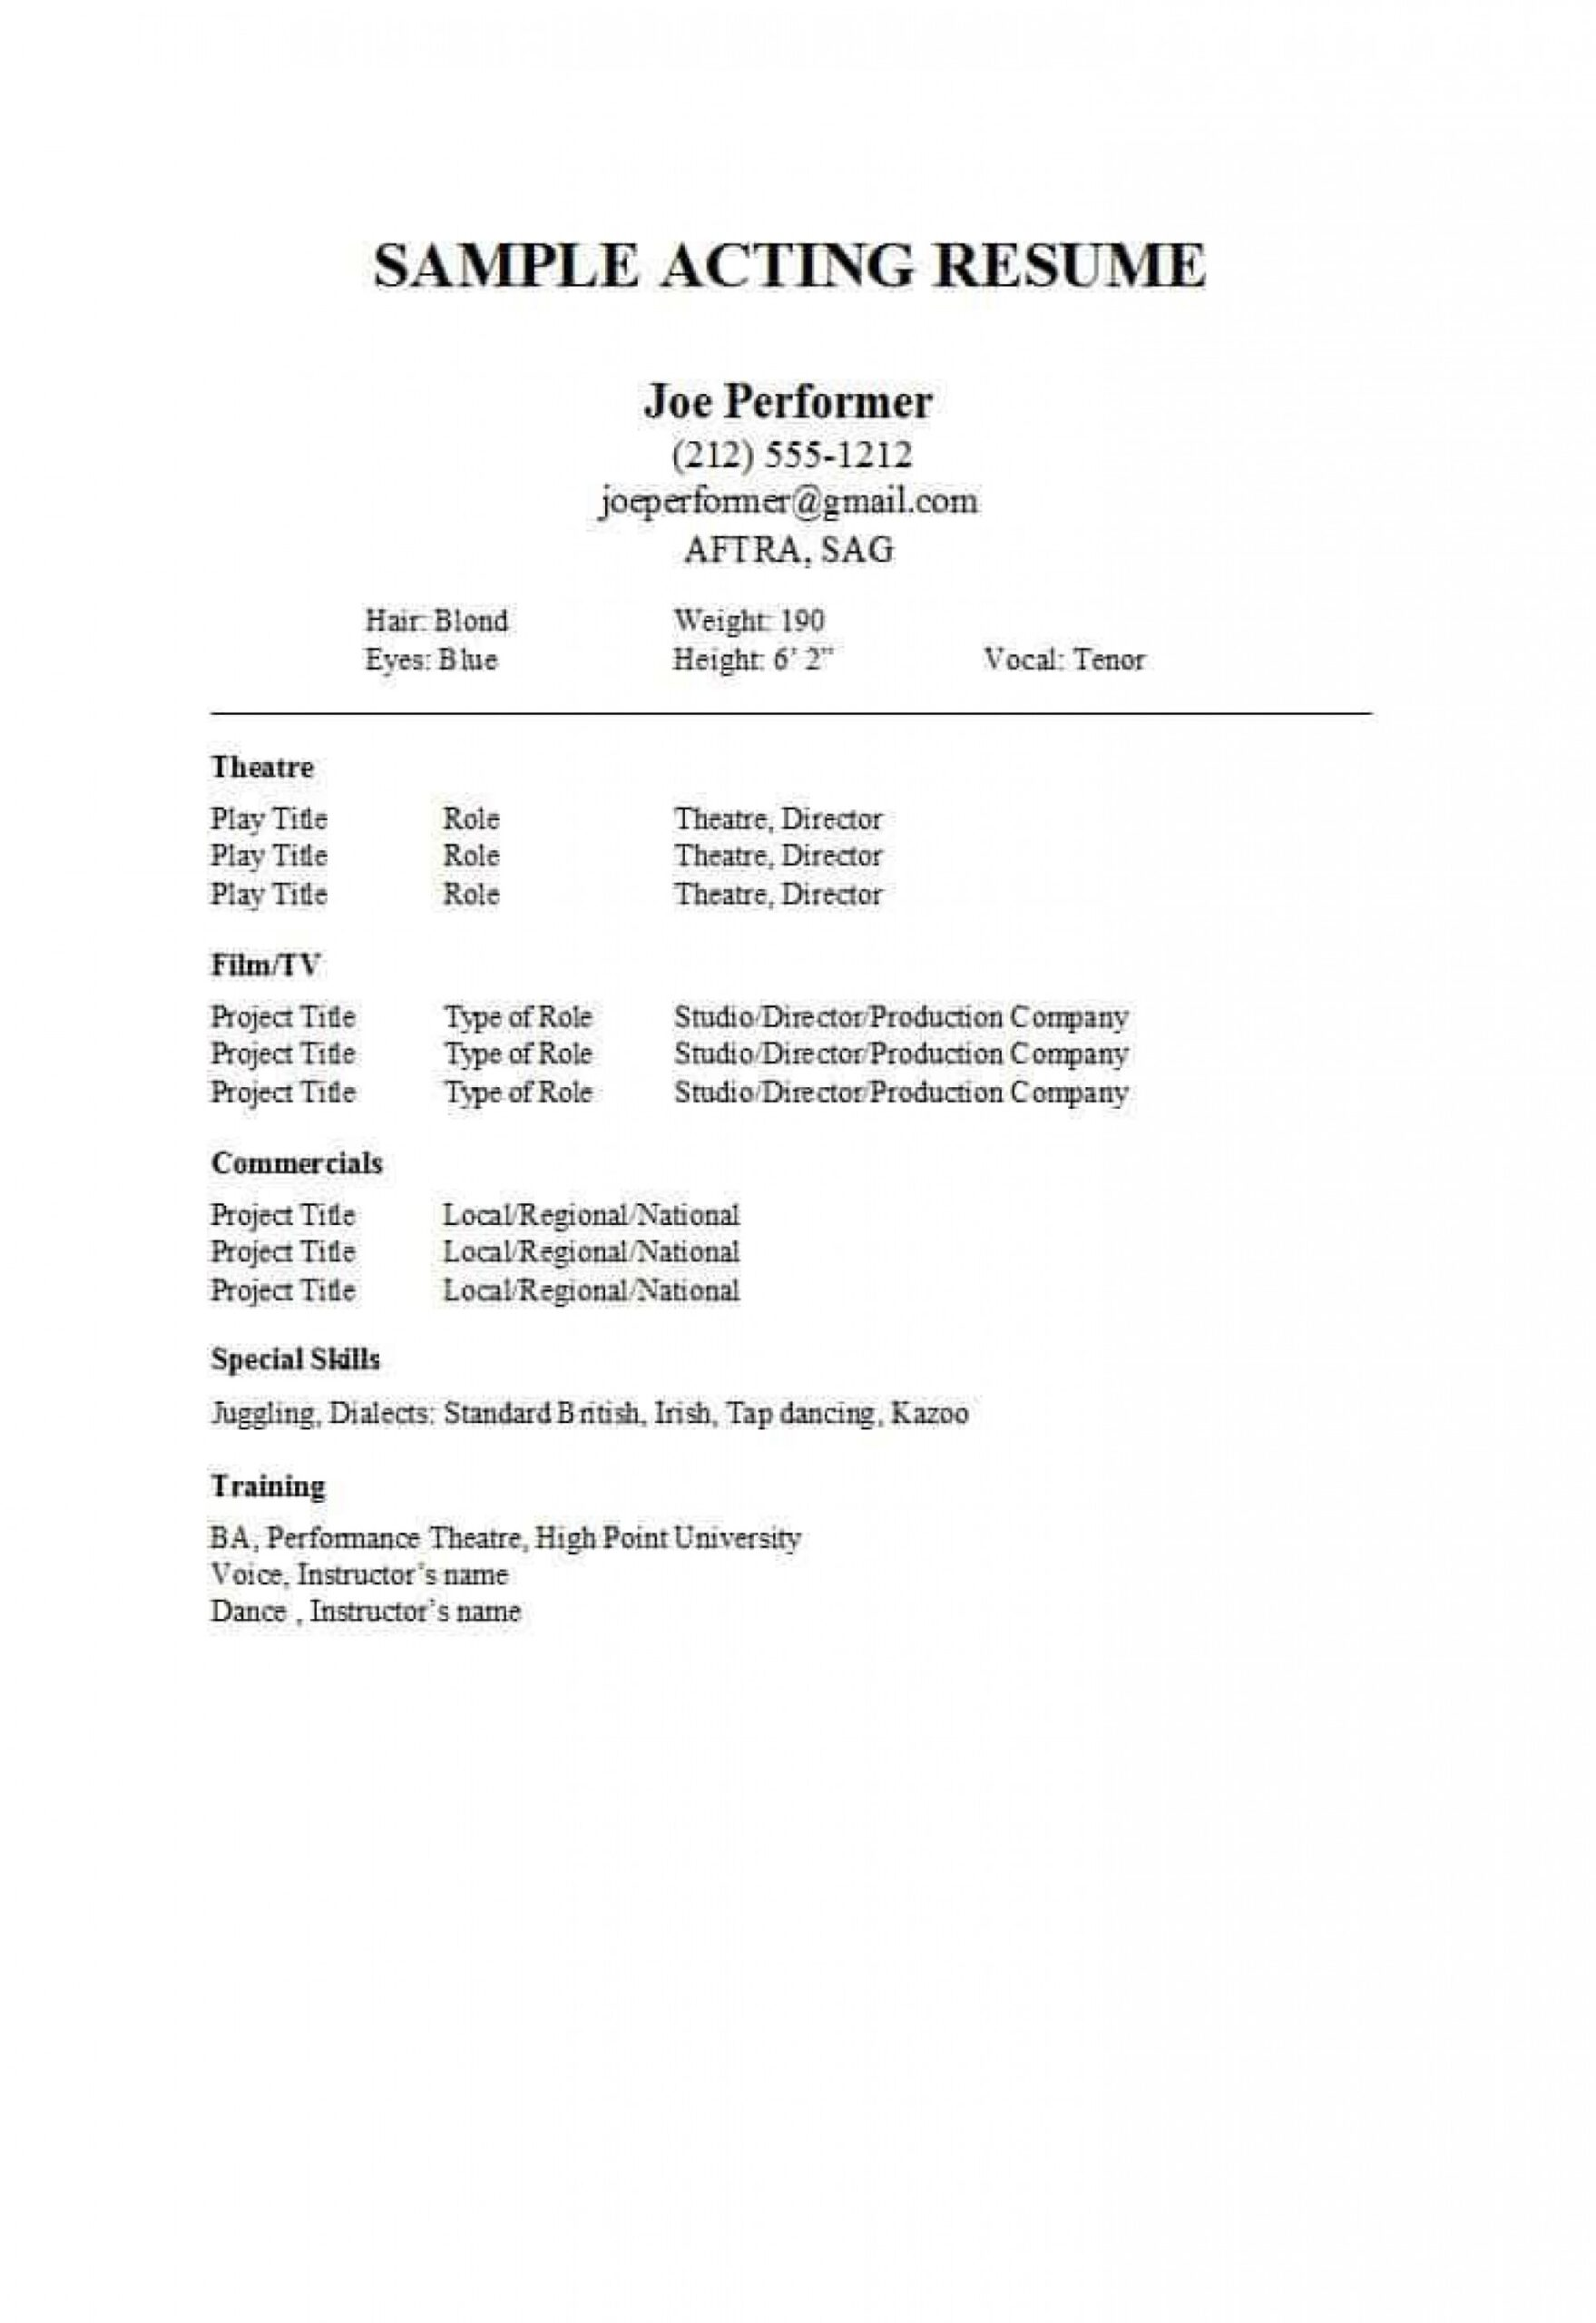 musical theatre resume template google docs addictionary professional acting incredible Resume Professional Acting Resume Template